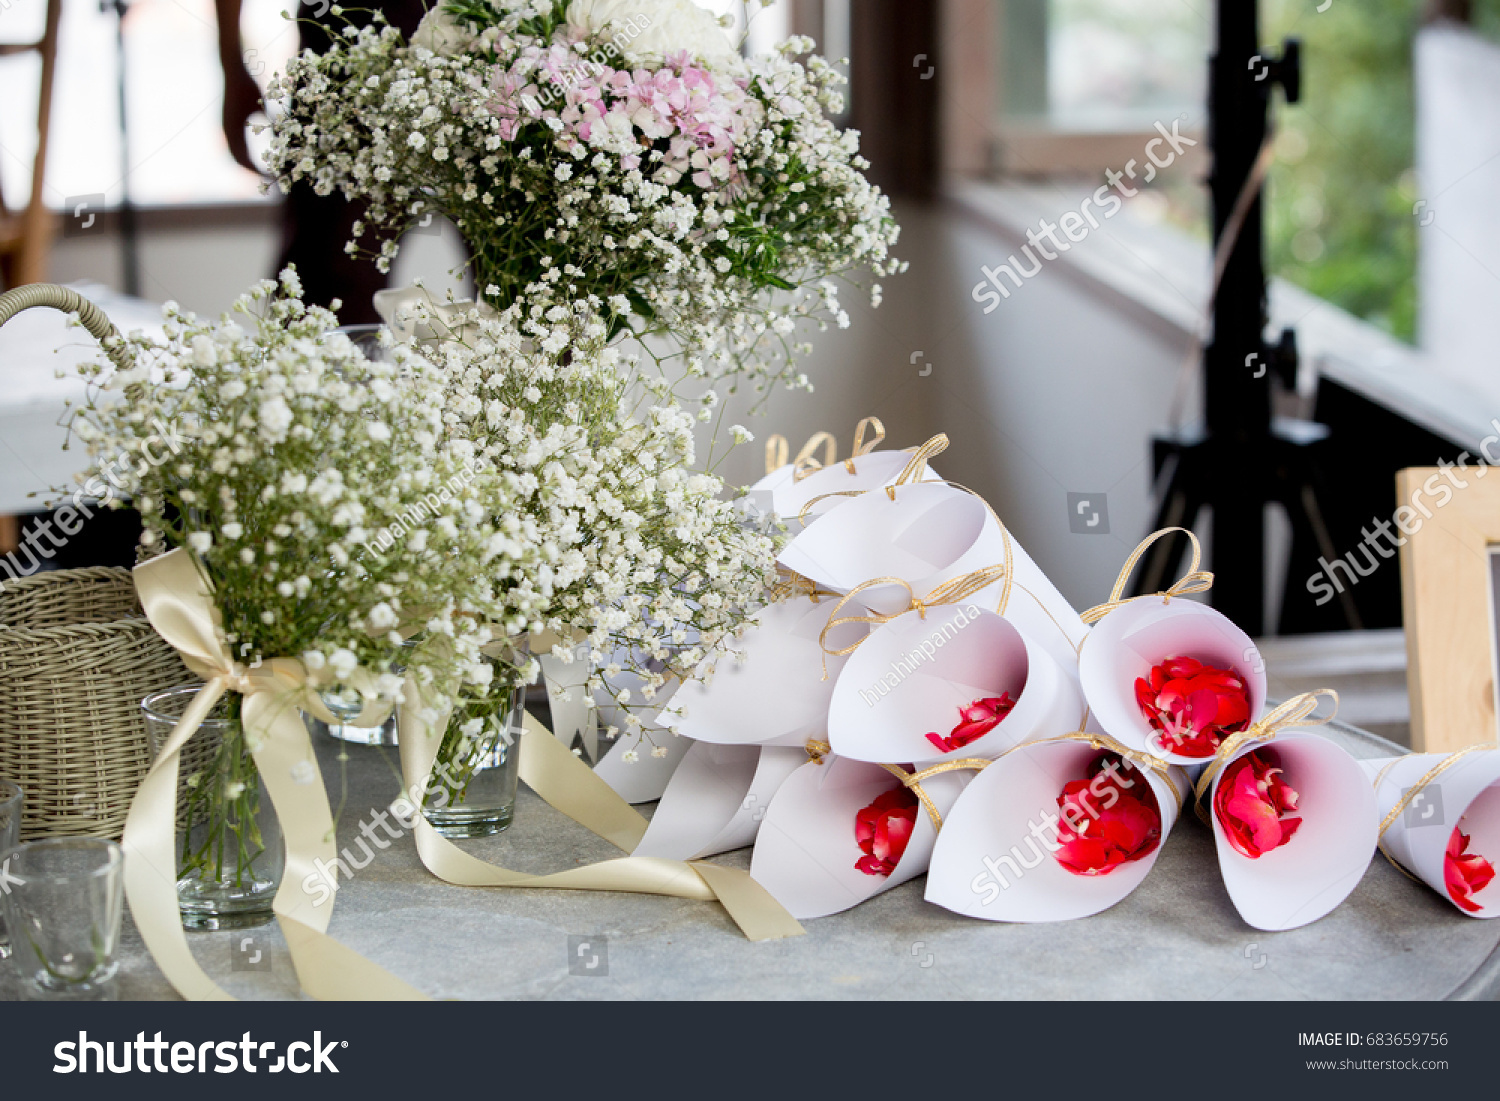 Red rose petals white paper cones stock photo edit now 683659756 red rose petals in white paper cones and flower bouquet preparation for the wedding ceremony mightylinksfo